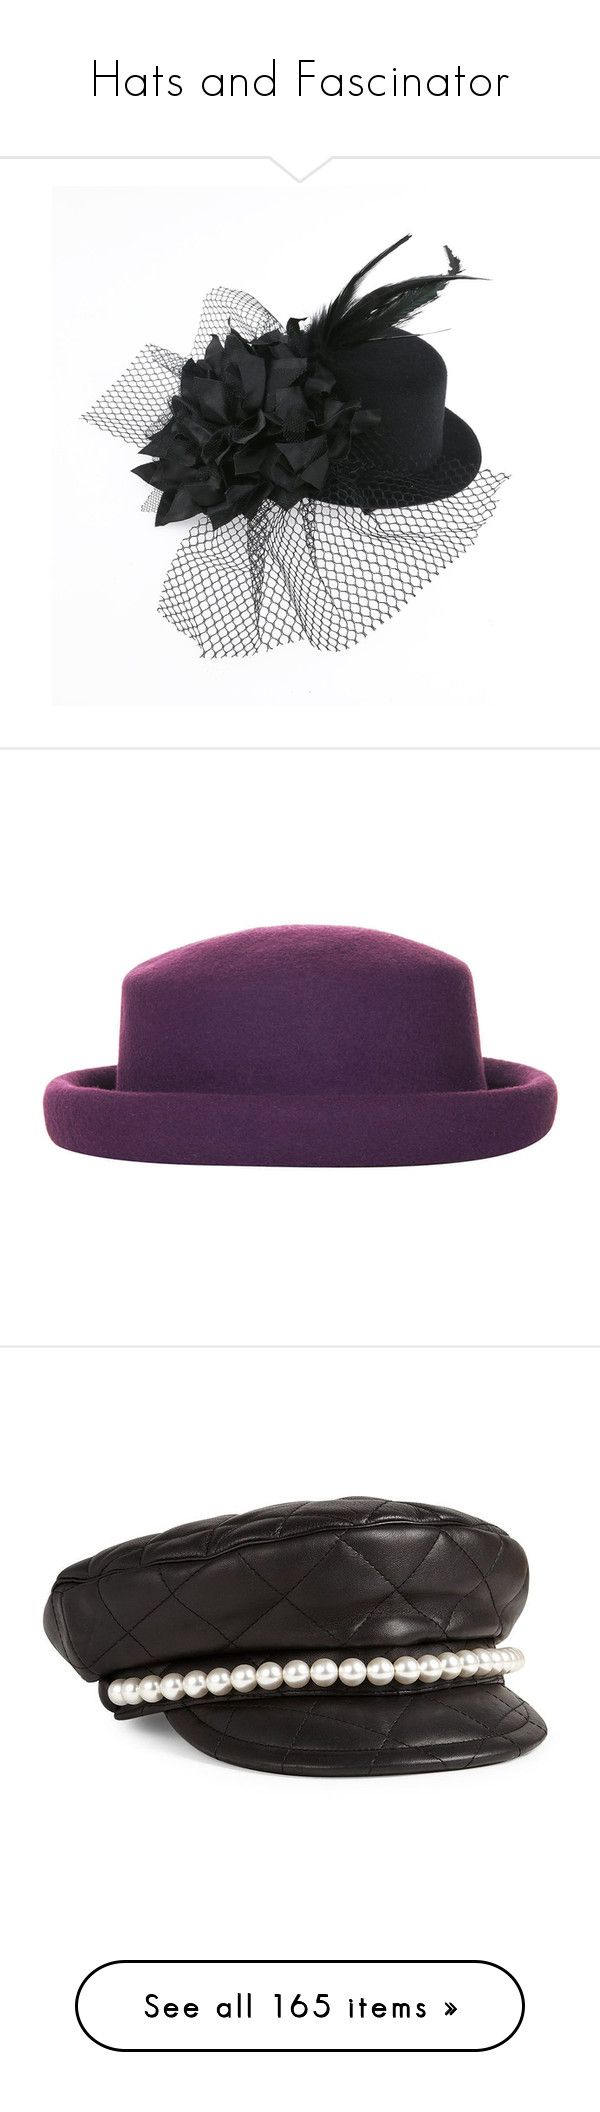 """""""Hats and Fascinator"""" by rebellious-ingenue ❤ liked on Polyvore featuring accessories, hats, topshop, plum, woolen hat, topshop hats, brimmed hat, porkpie hat, pork pie hat and apparel & accessories"""